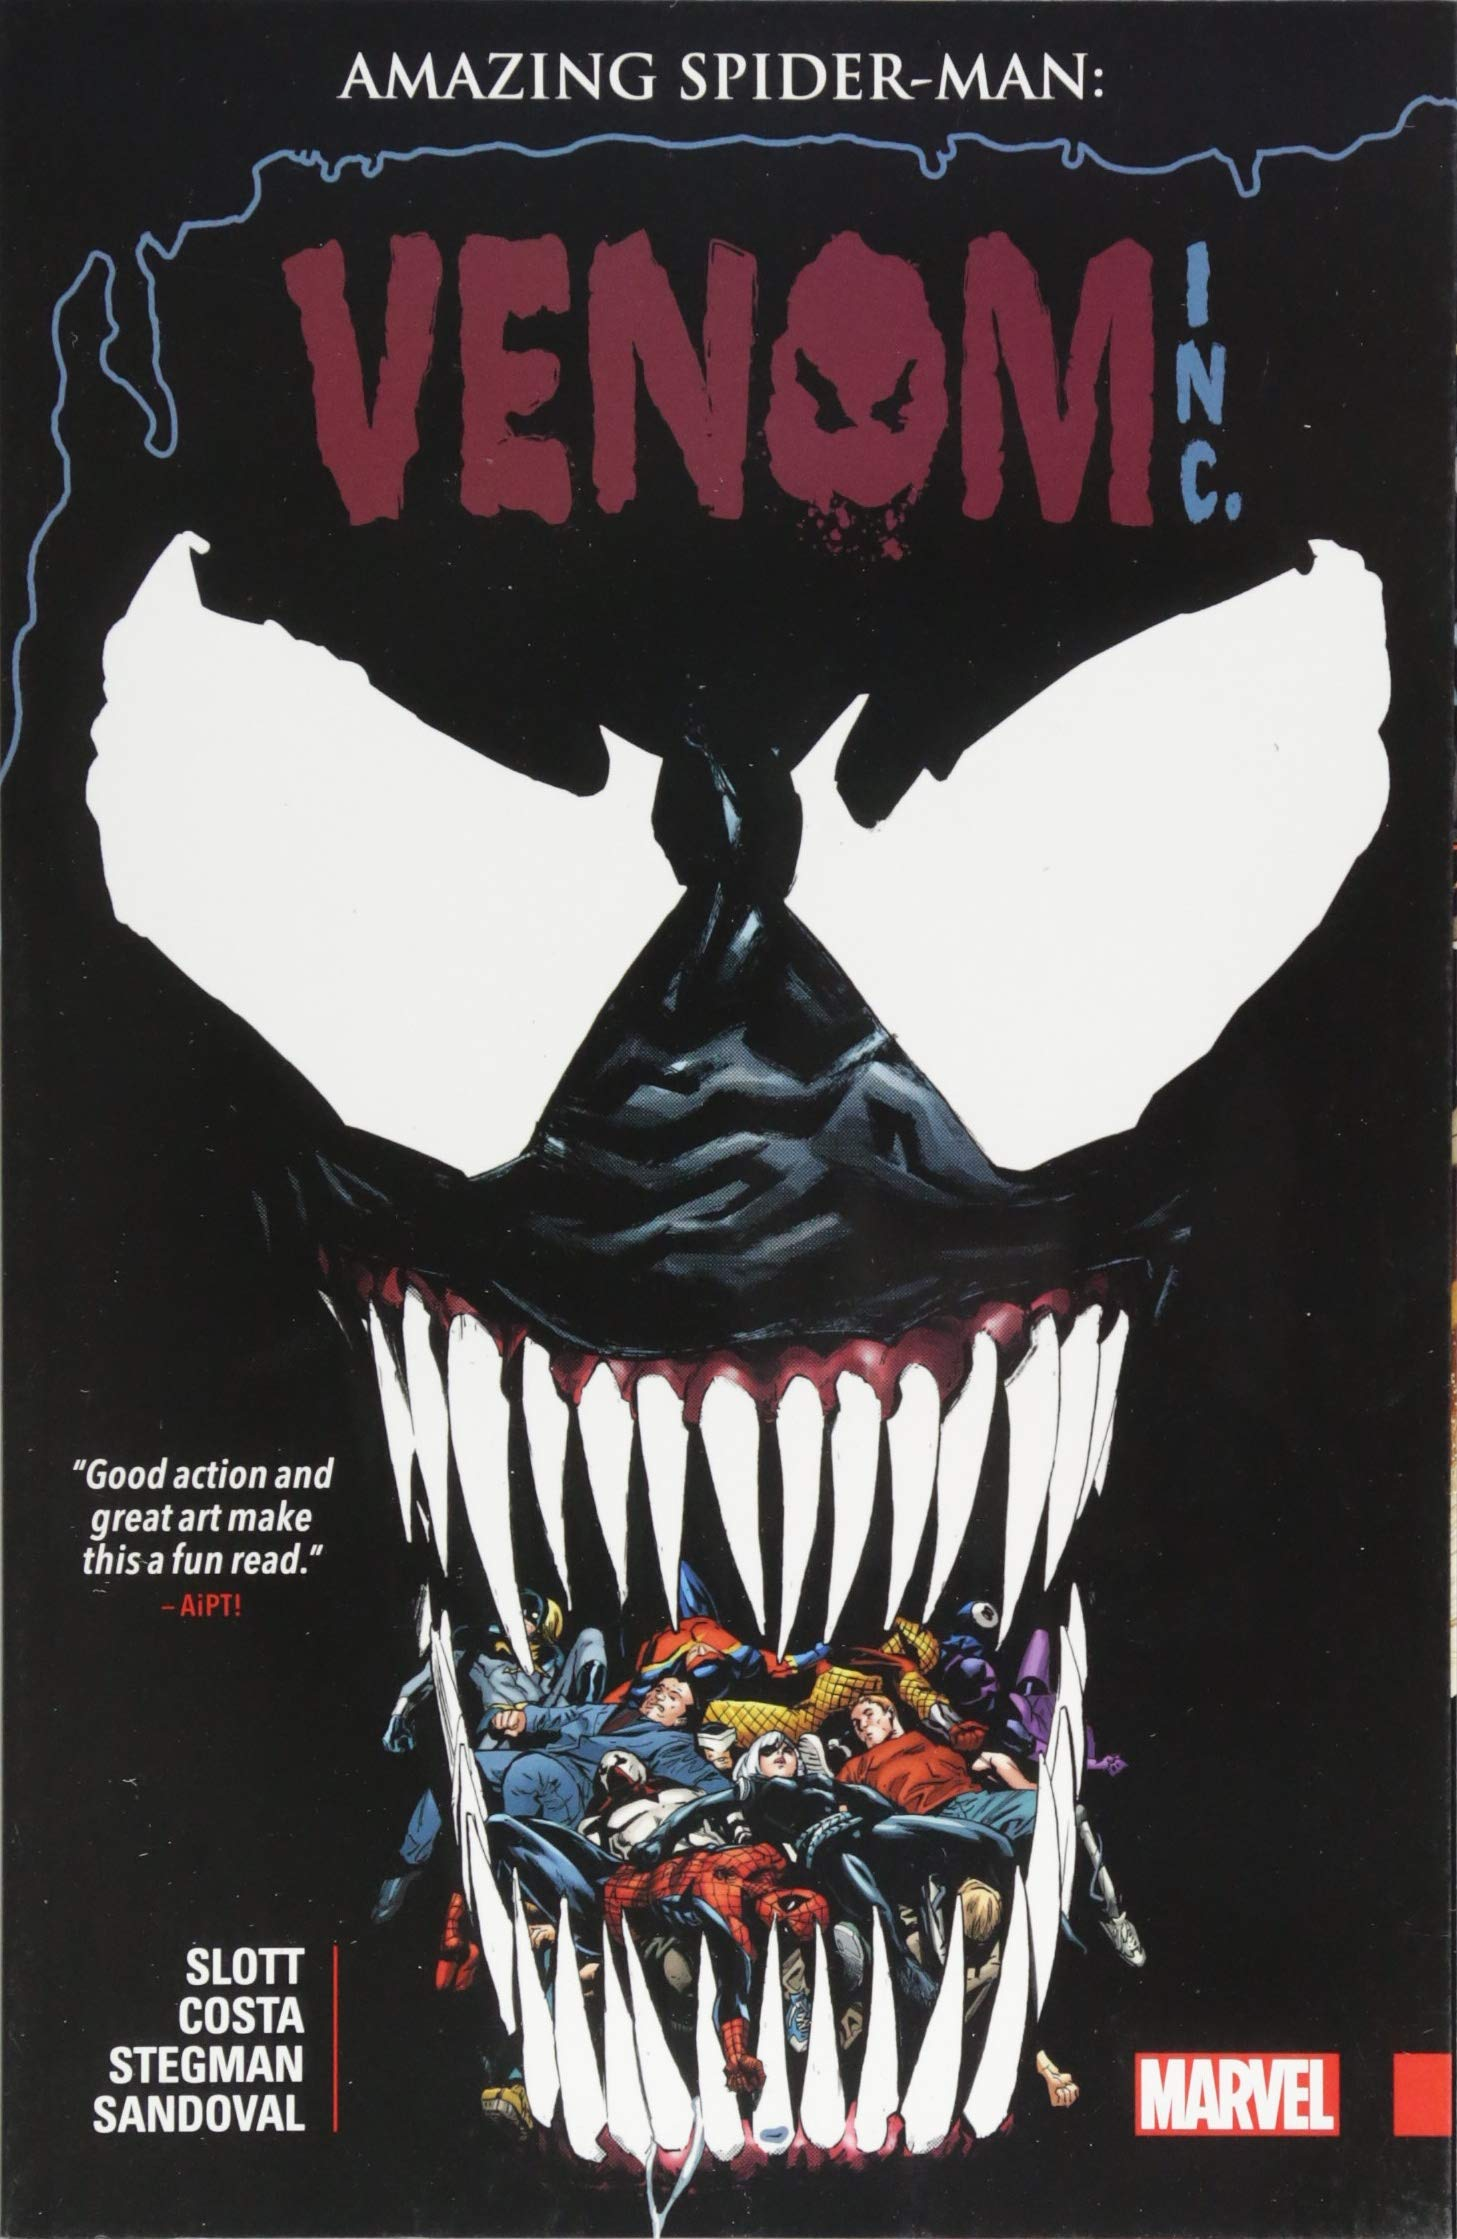 Amazing Spider-Man: Venom Inc. thumbnail